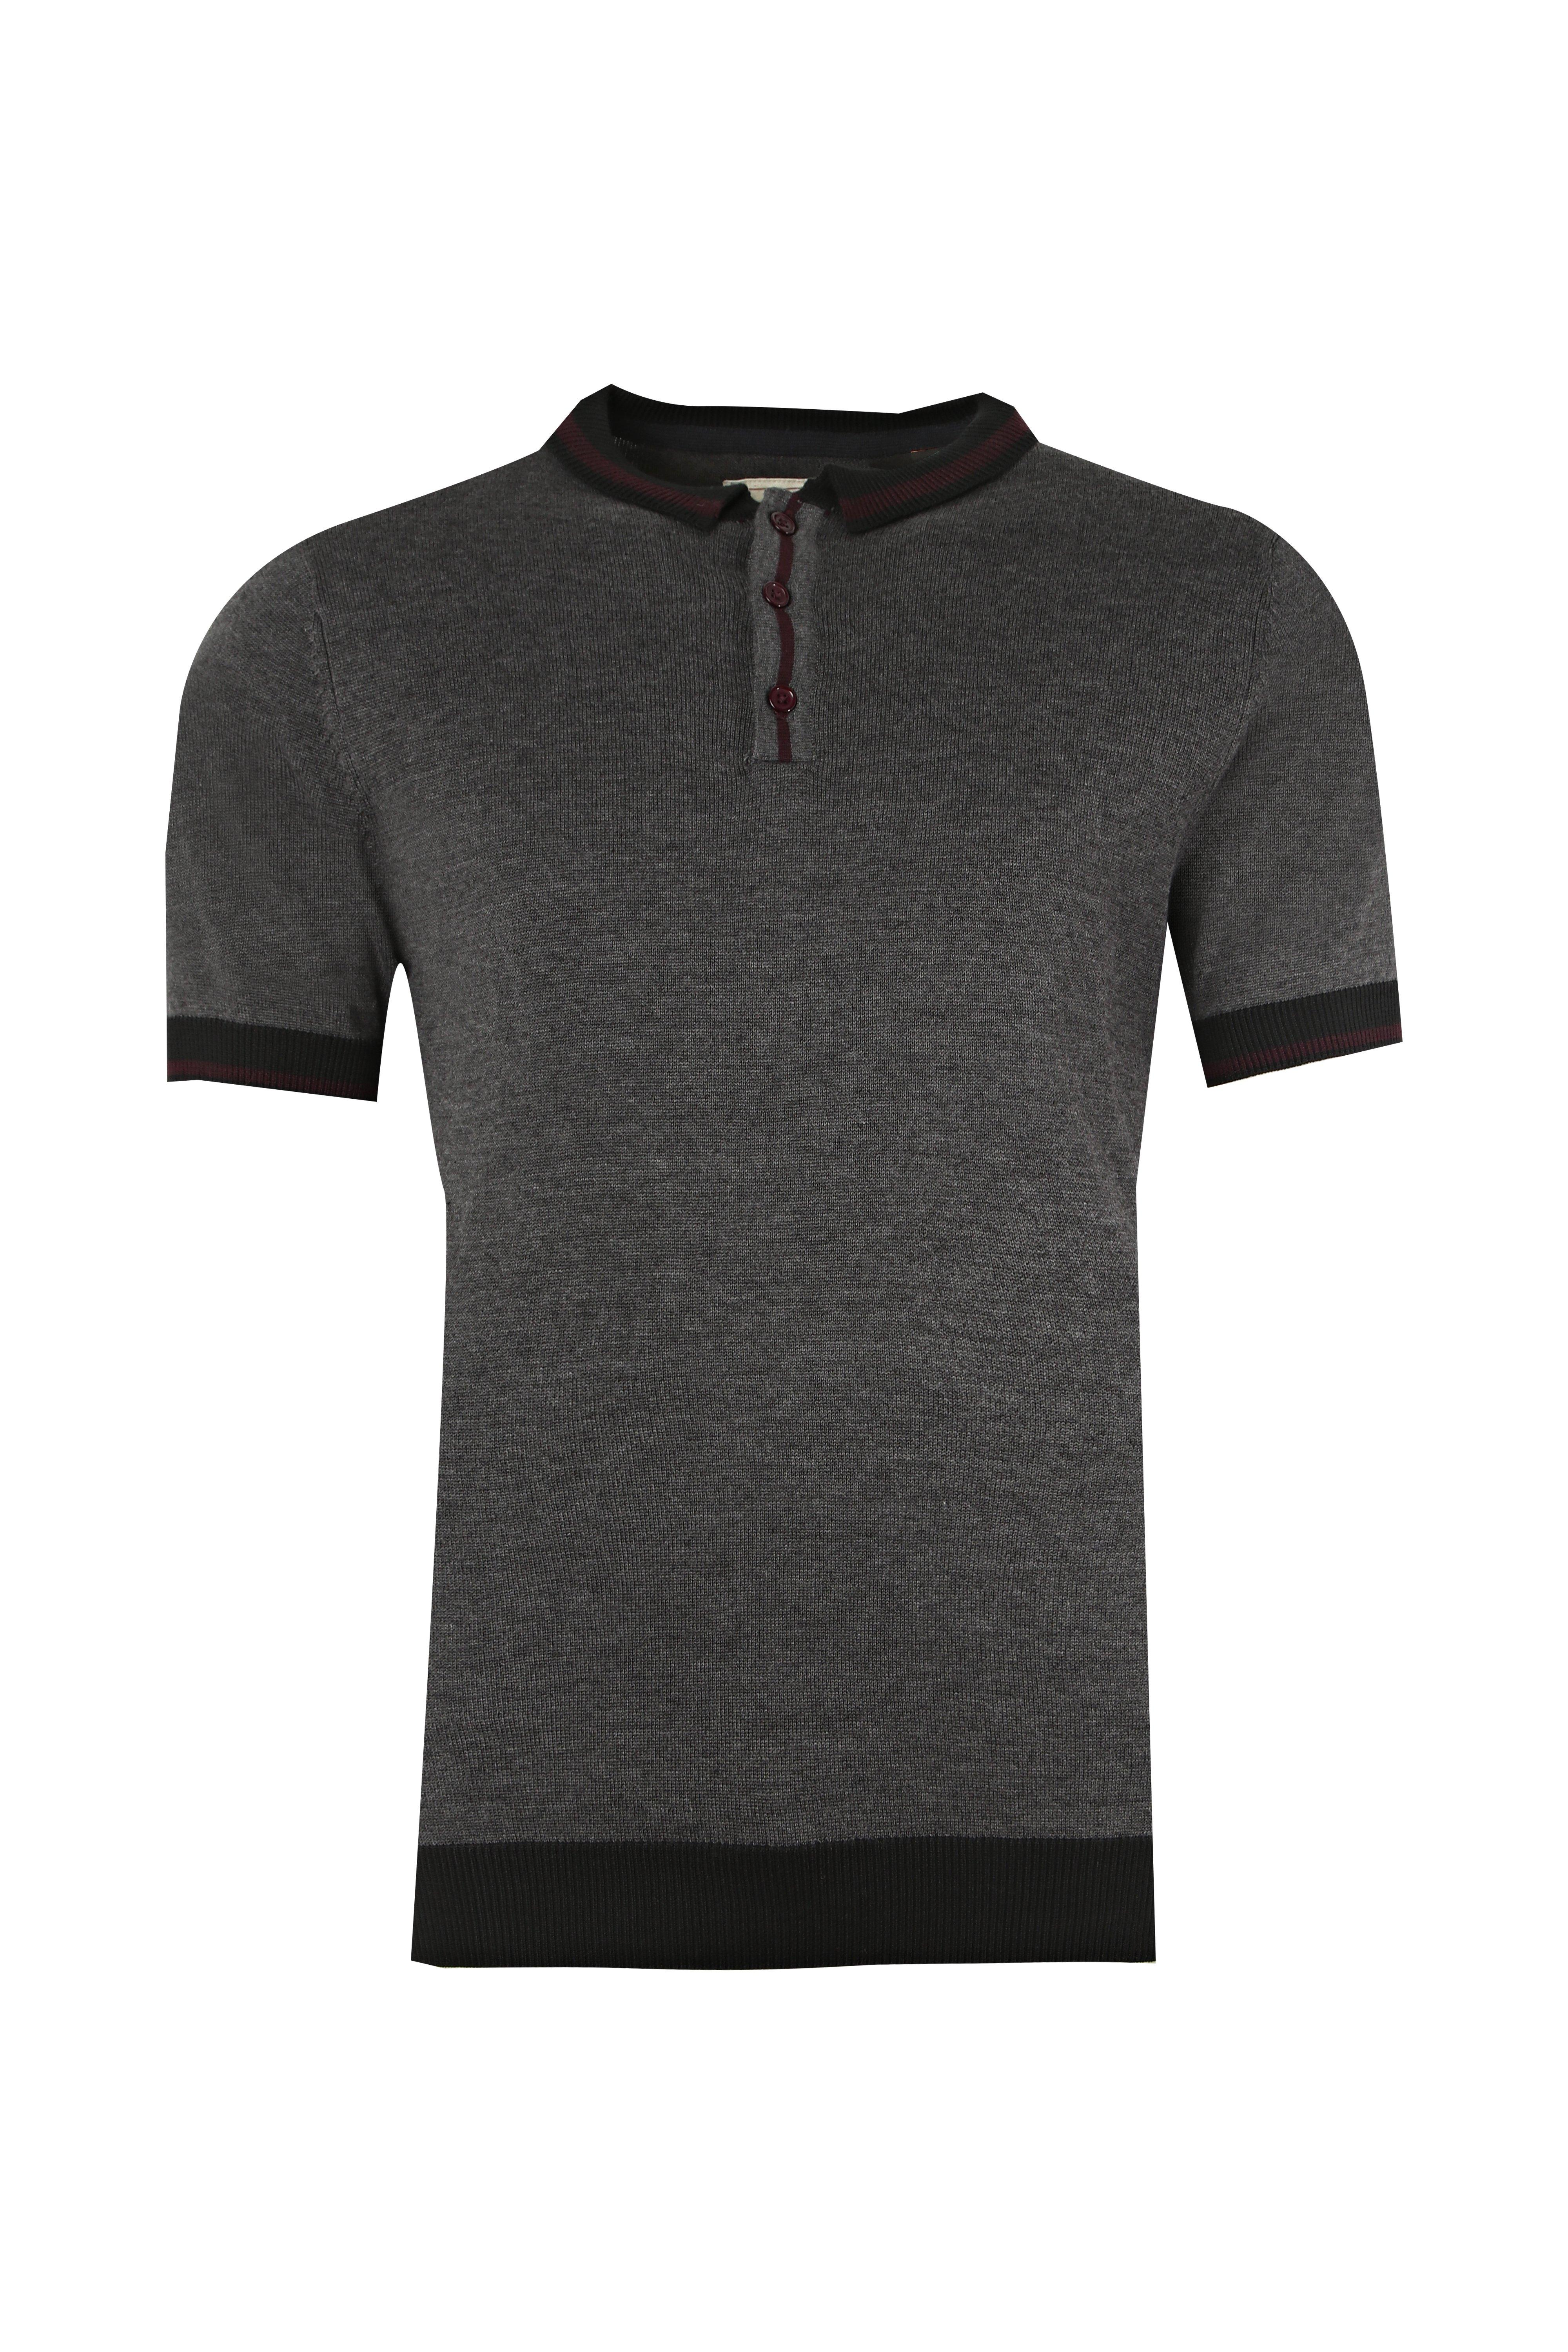 boohooMAN charcoal Short Sleeve Knitted Polo with Tipping